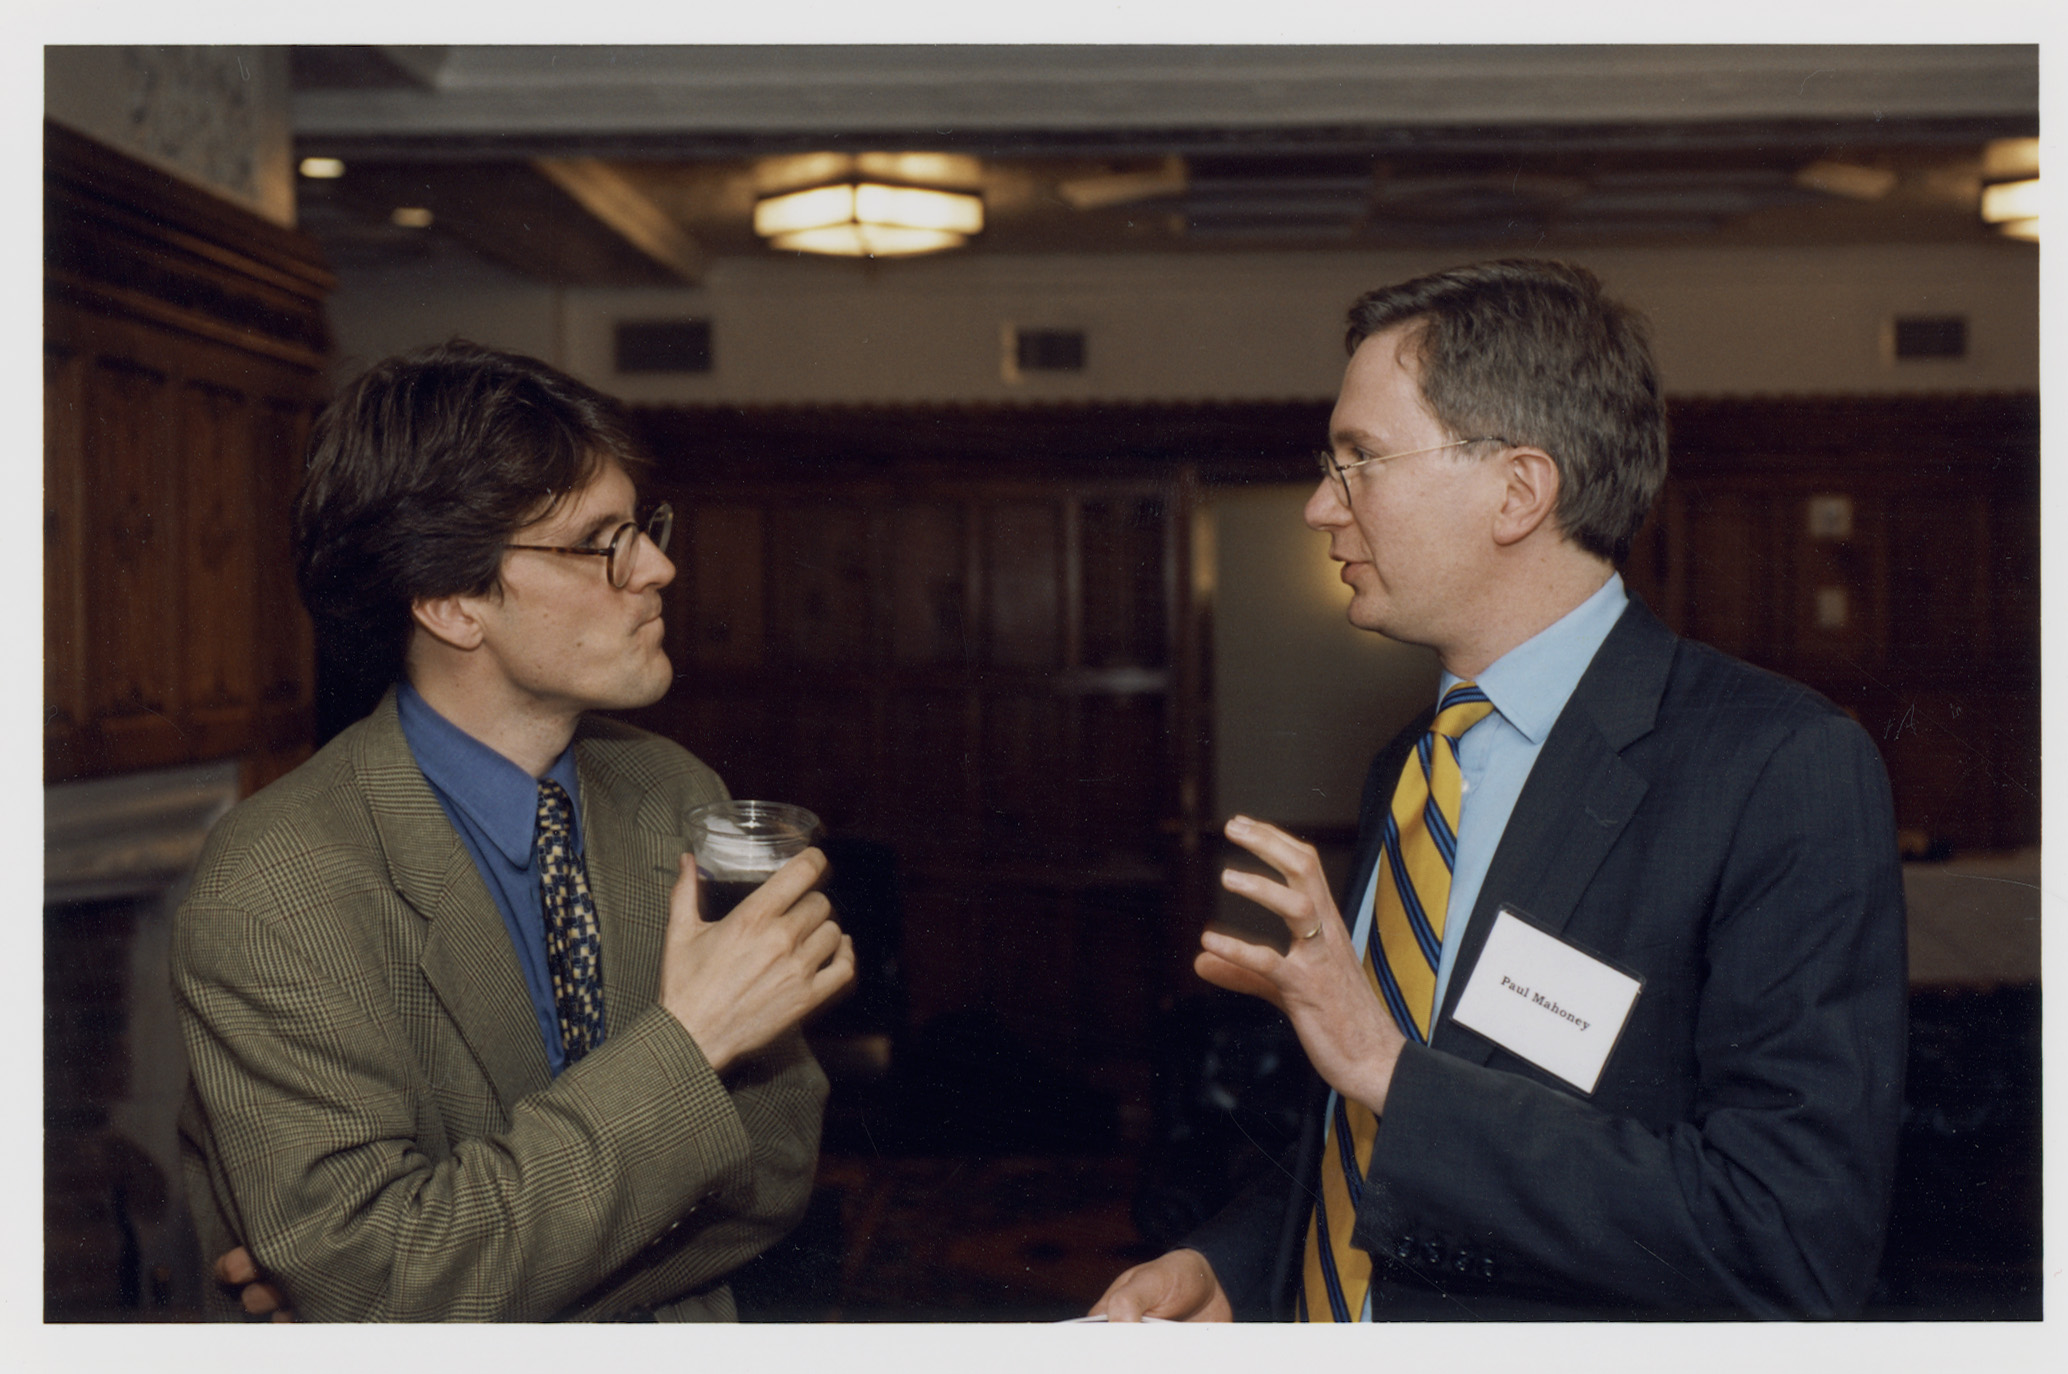 Harvard Law Prof. John Coates and UVA Law Prof. Paul Mahoney '84